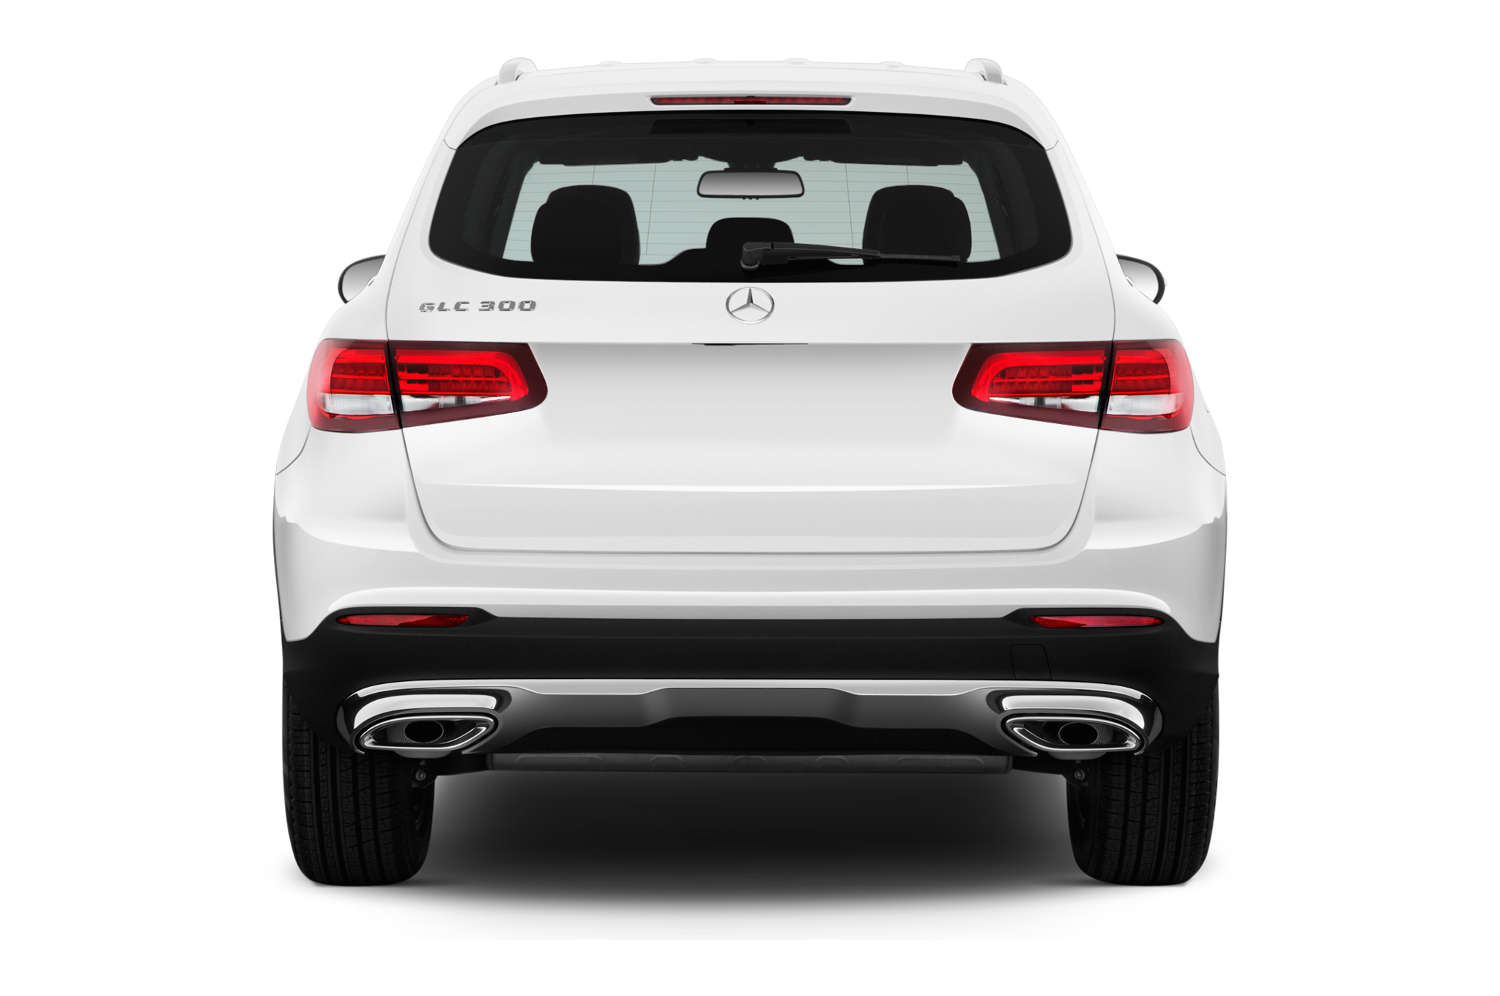 audi and benz Audi tampa is the bay area's leading local audi dealership see new and used audi cars for sale, special offers, and authorized audi service and parts here.